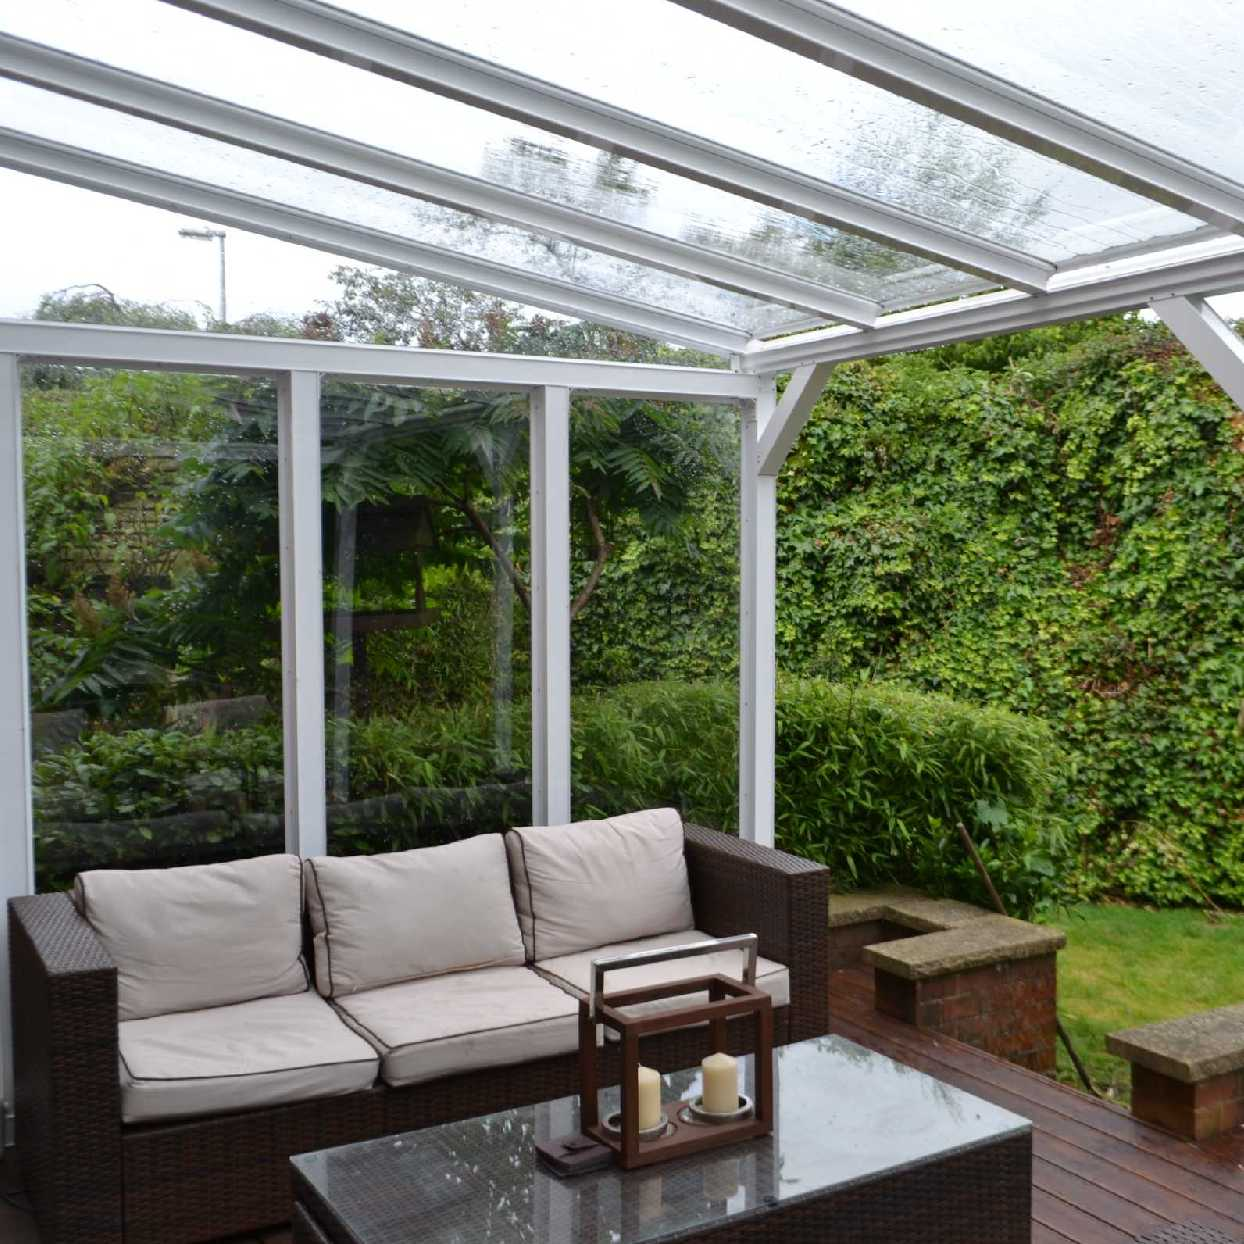 Great selection of Omega Smart White  Lean-To Canopy with 16mm Polycarbonate Glazing - 6.3m (W) x 2.0m (P), (4) Supporting Posts